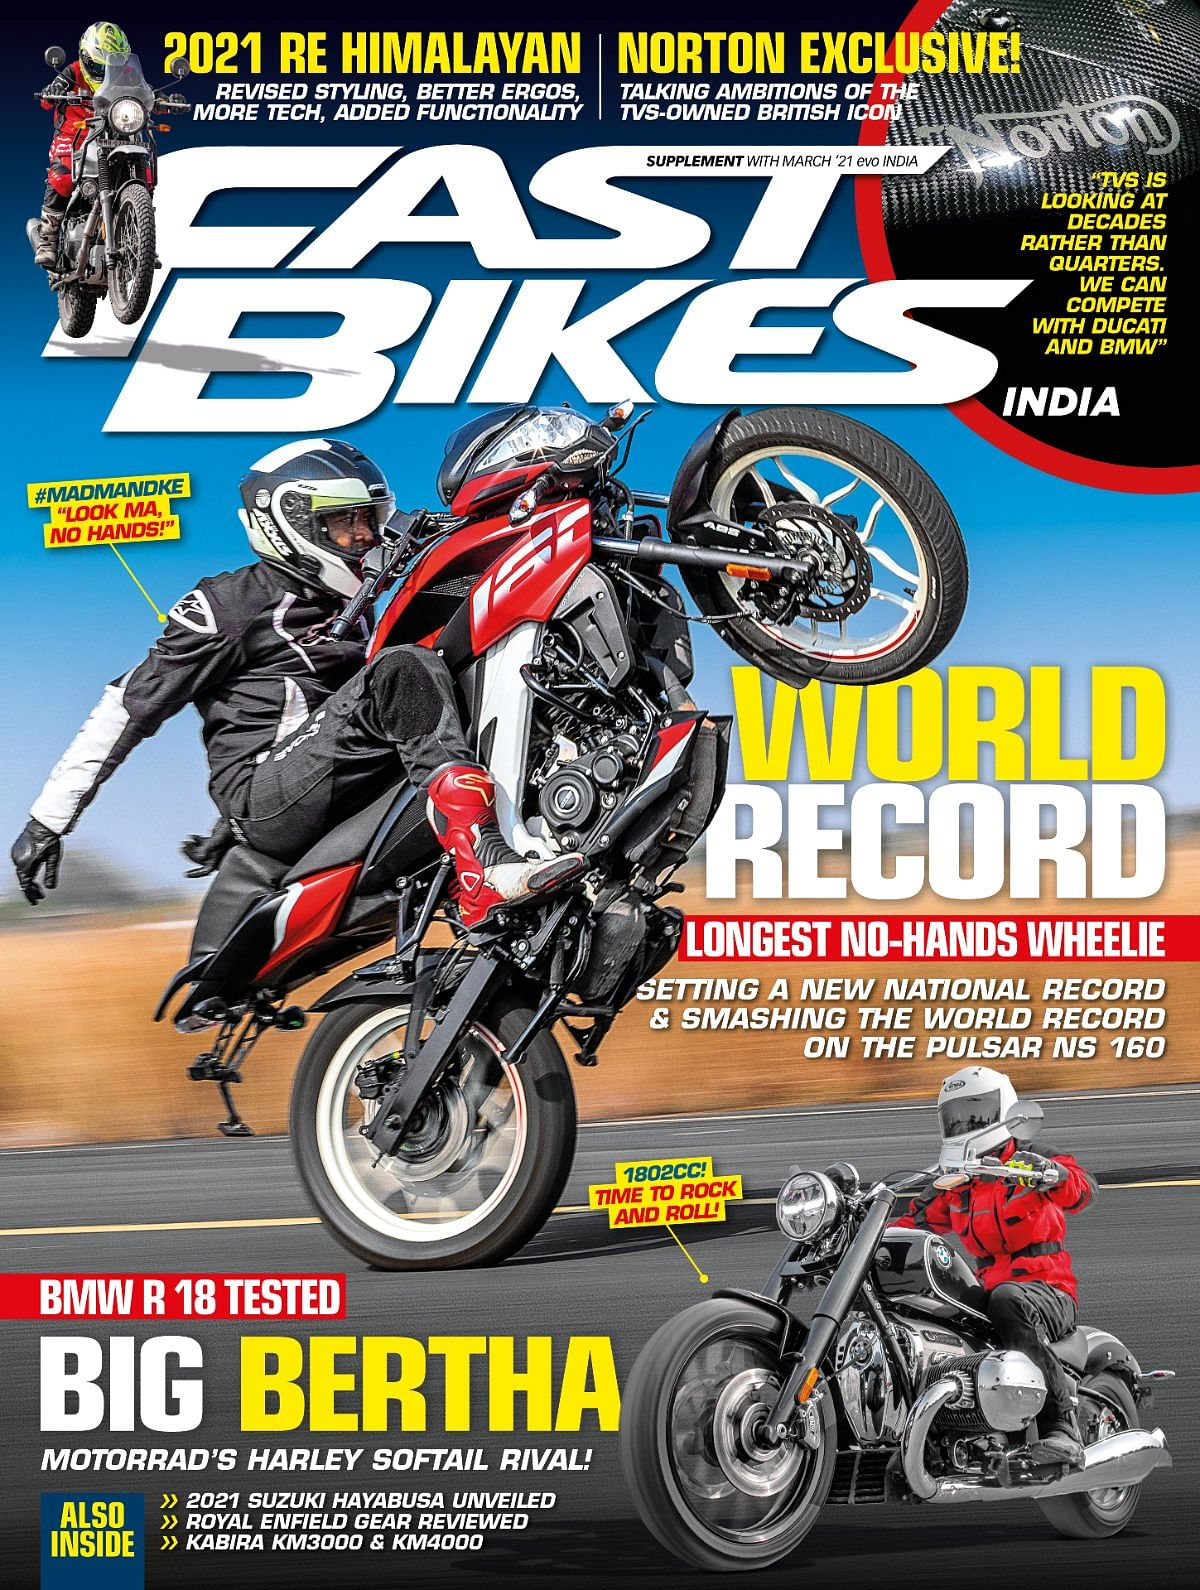 An action packed month for the motorcycle fraternity